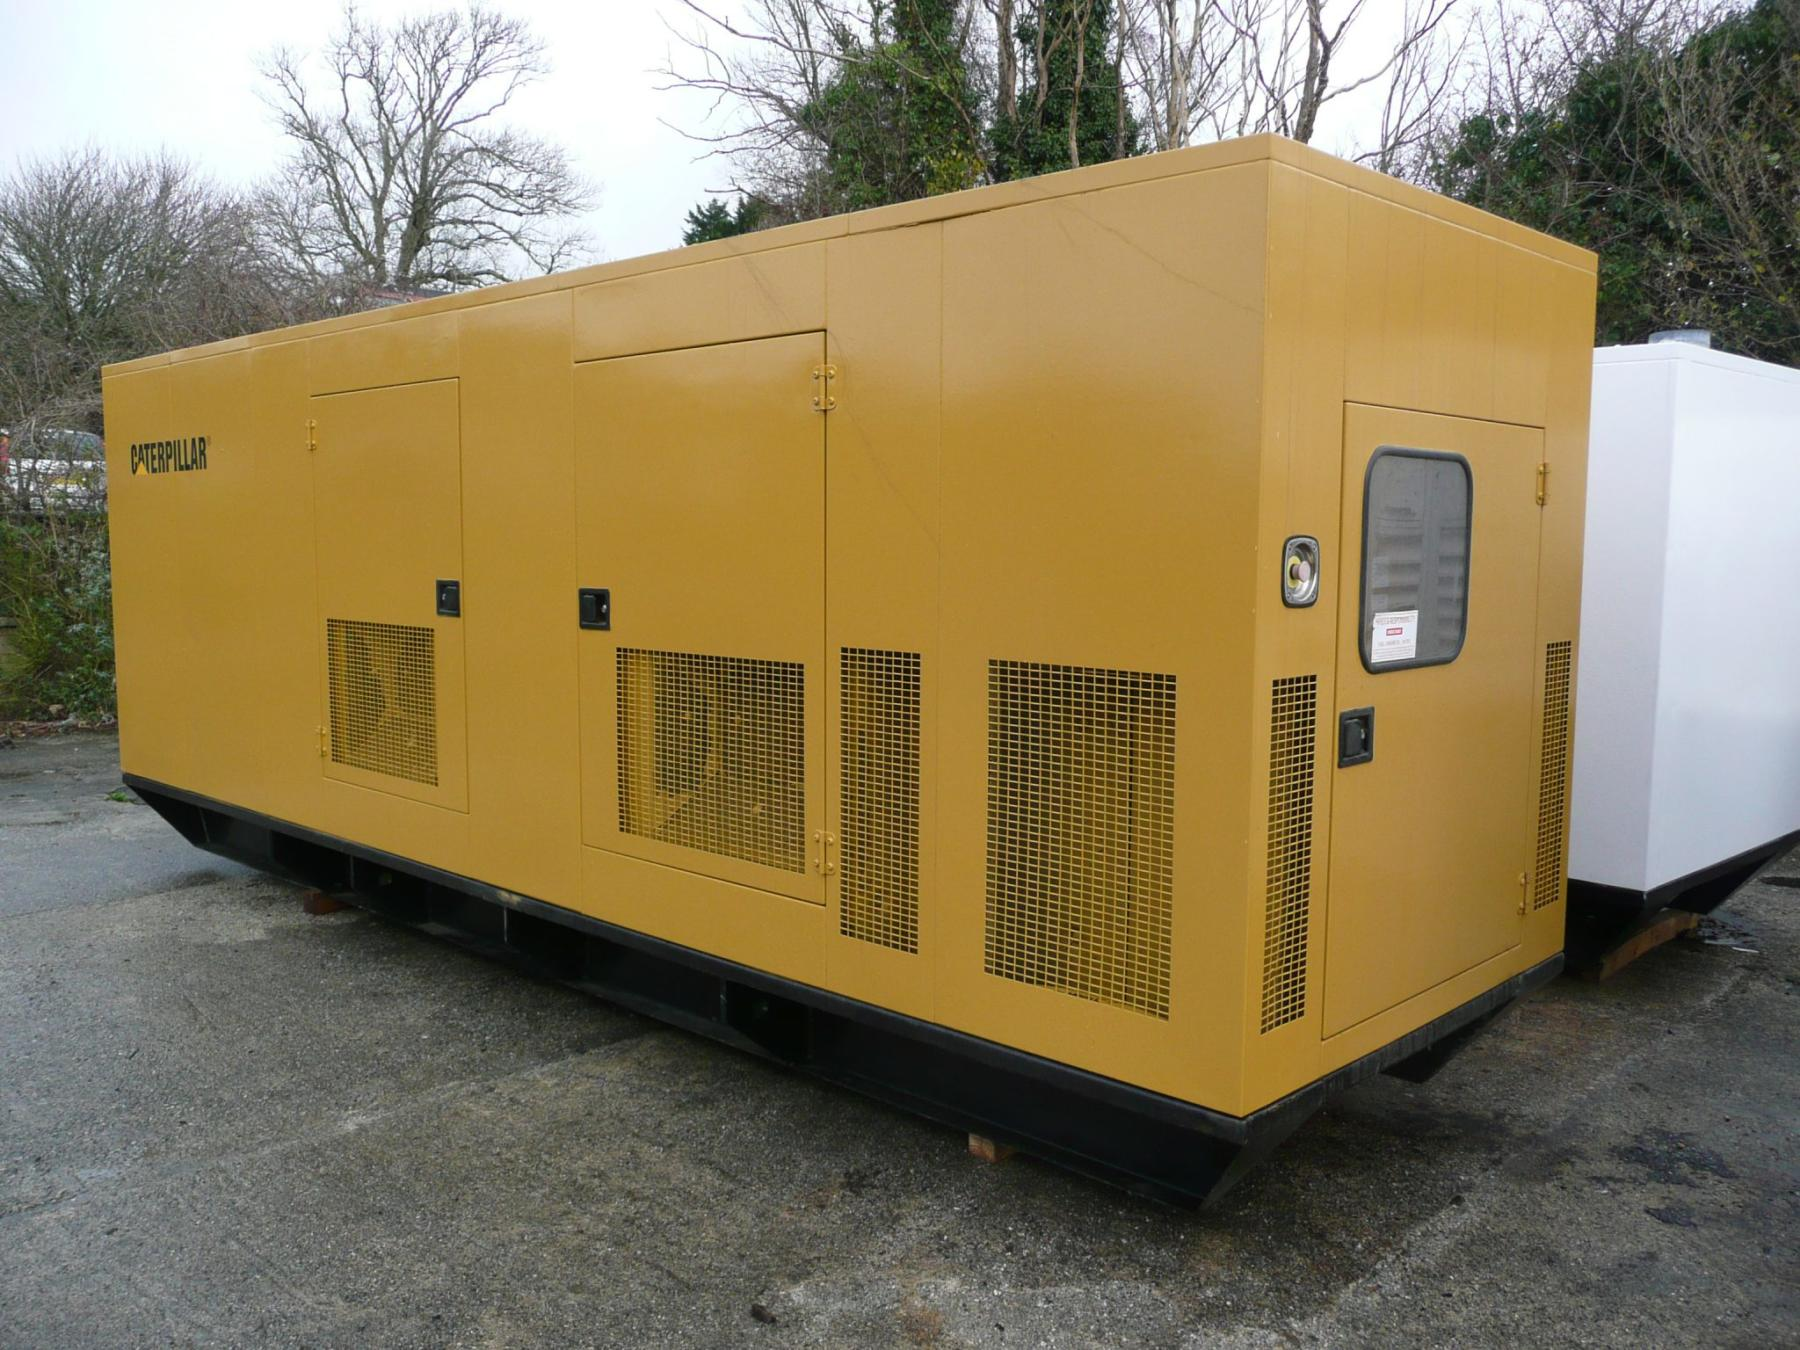 CATERPILLAR 500KVA GENERATOR Generator Sales & Servicing Co